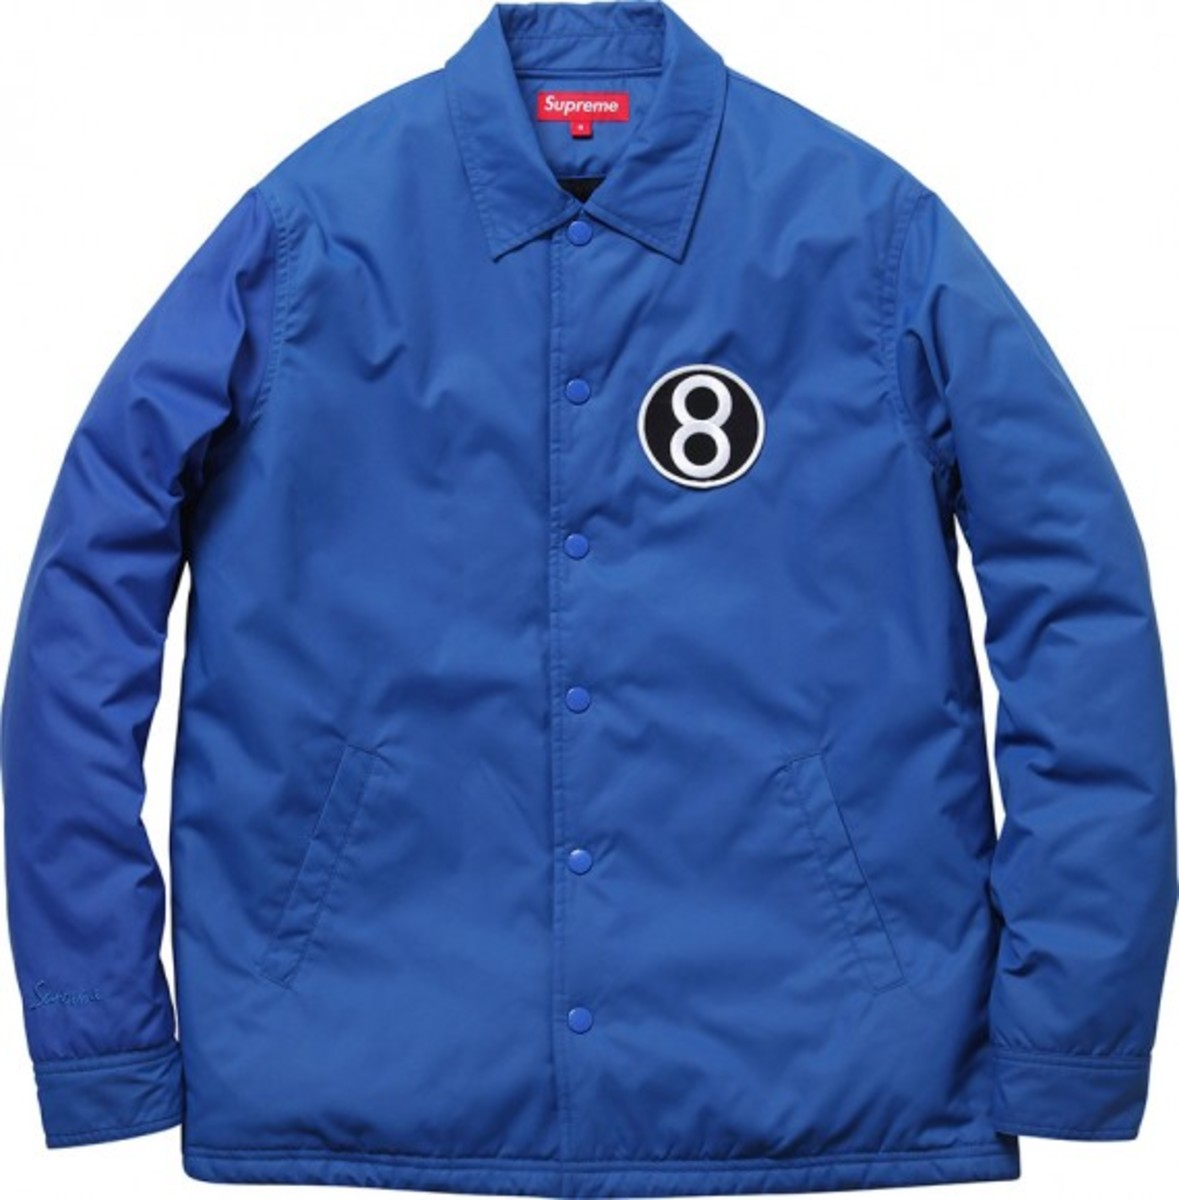 5-8_ball_coaches_jacket-zoom_1345454999